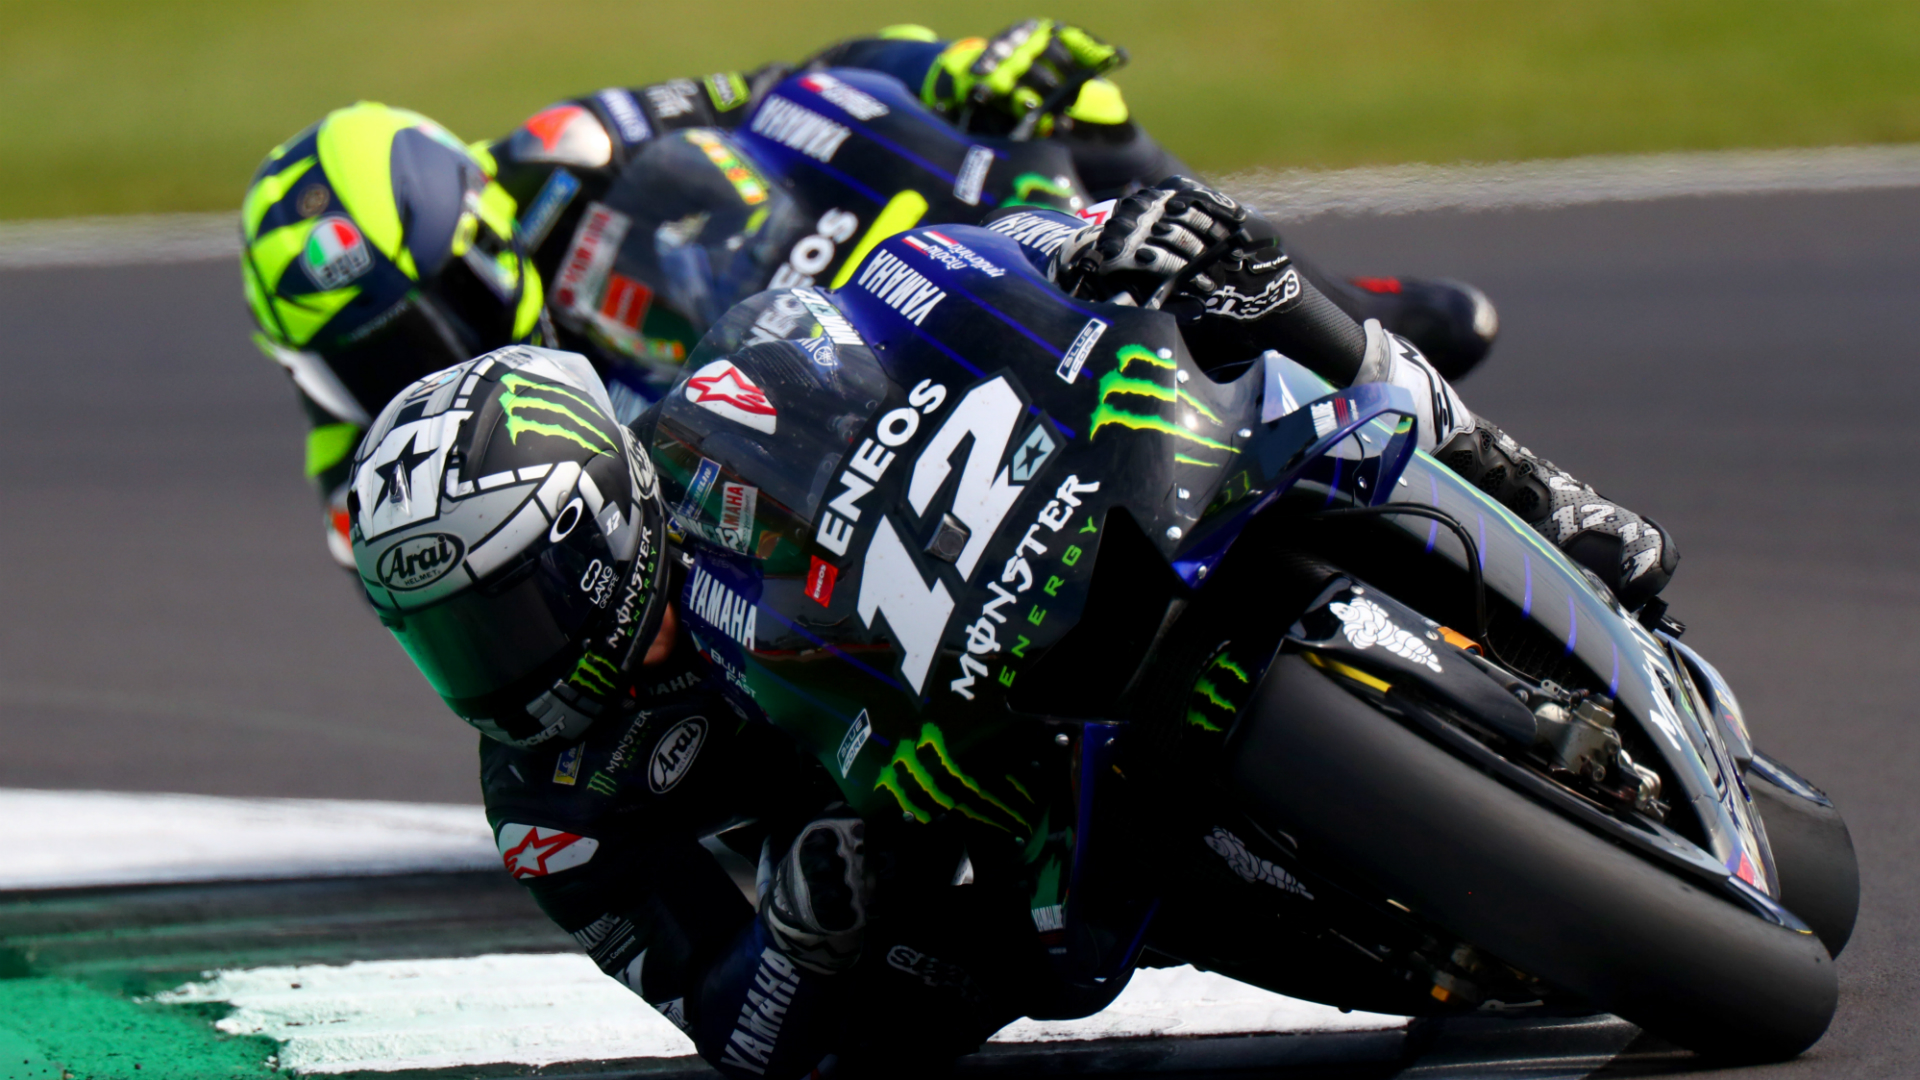 MotoGP returns this weekend in San Marino, where Valentino Rossi is looking to build on some past success after some strong tests.